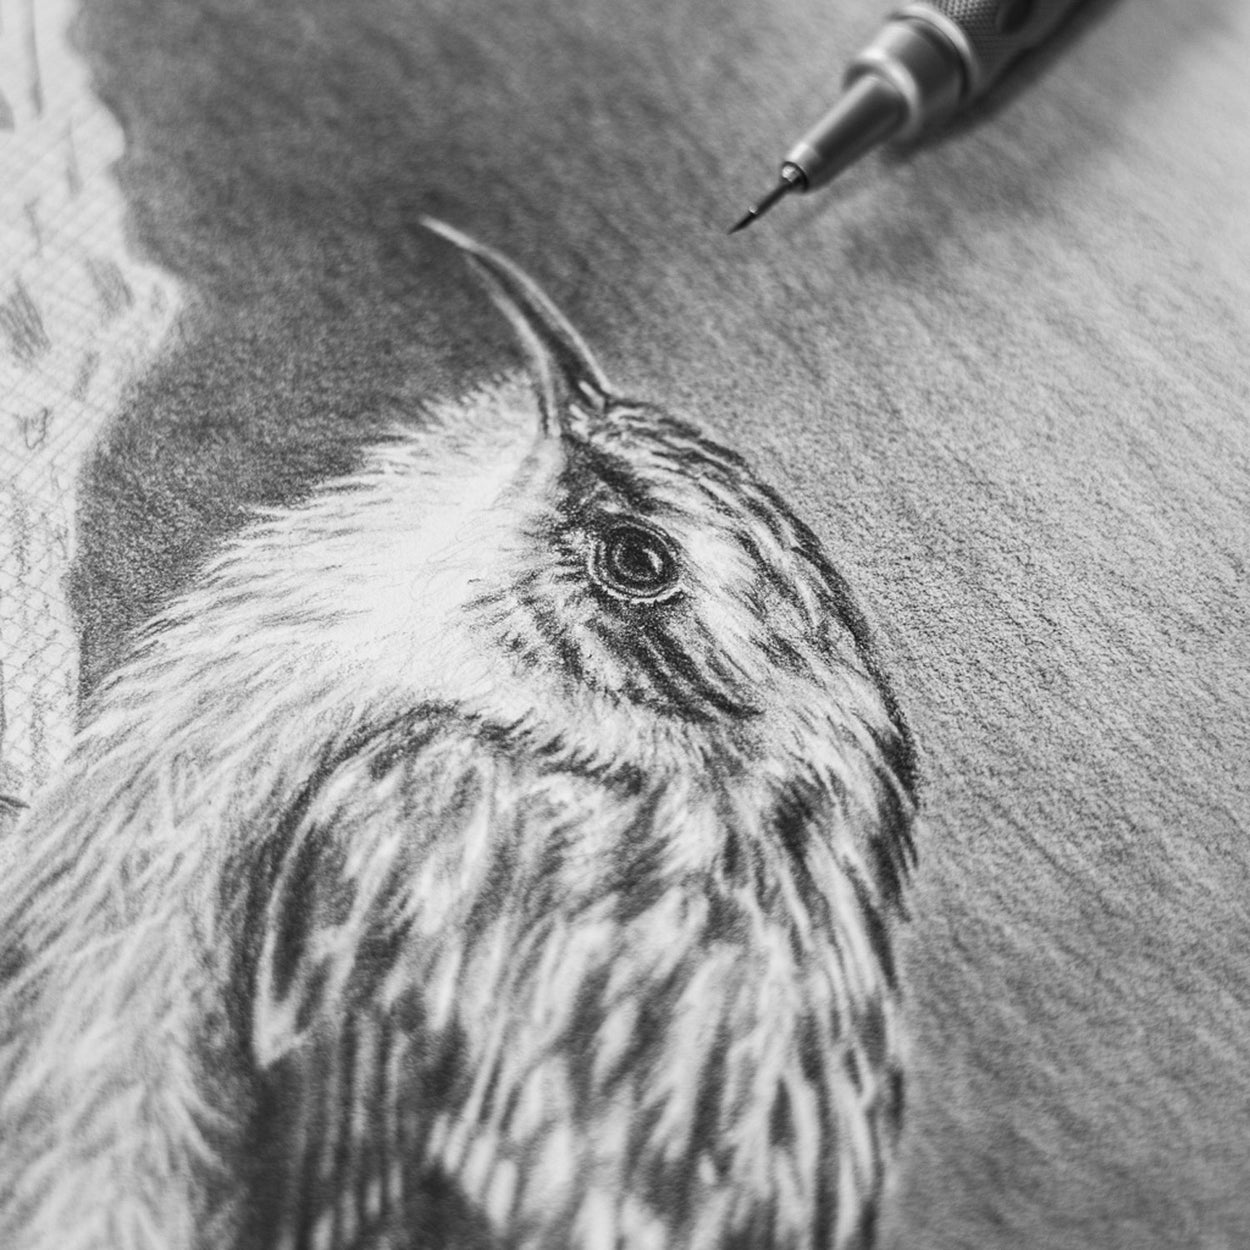 Treecreeper Progress with Pencil - The Thriving Wild